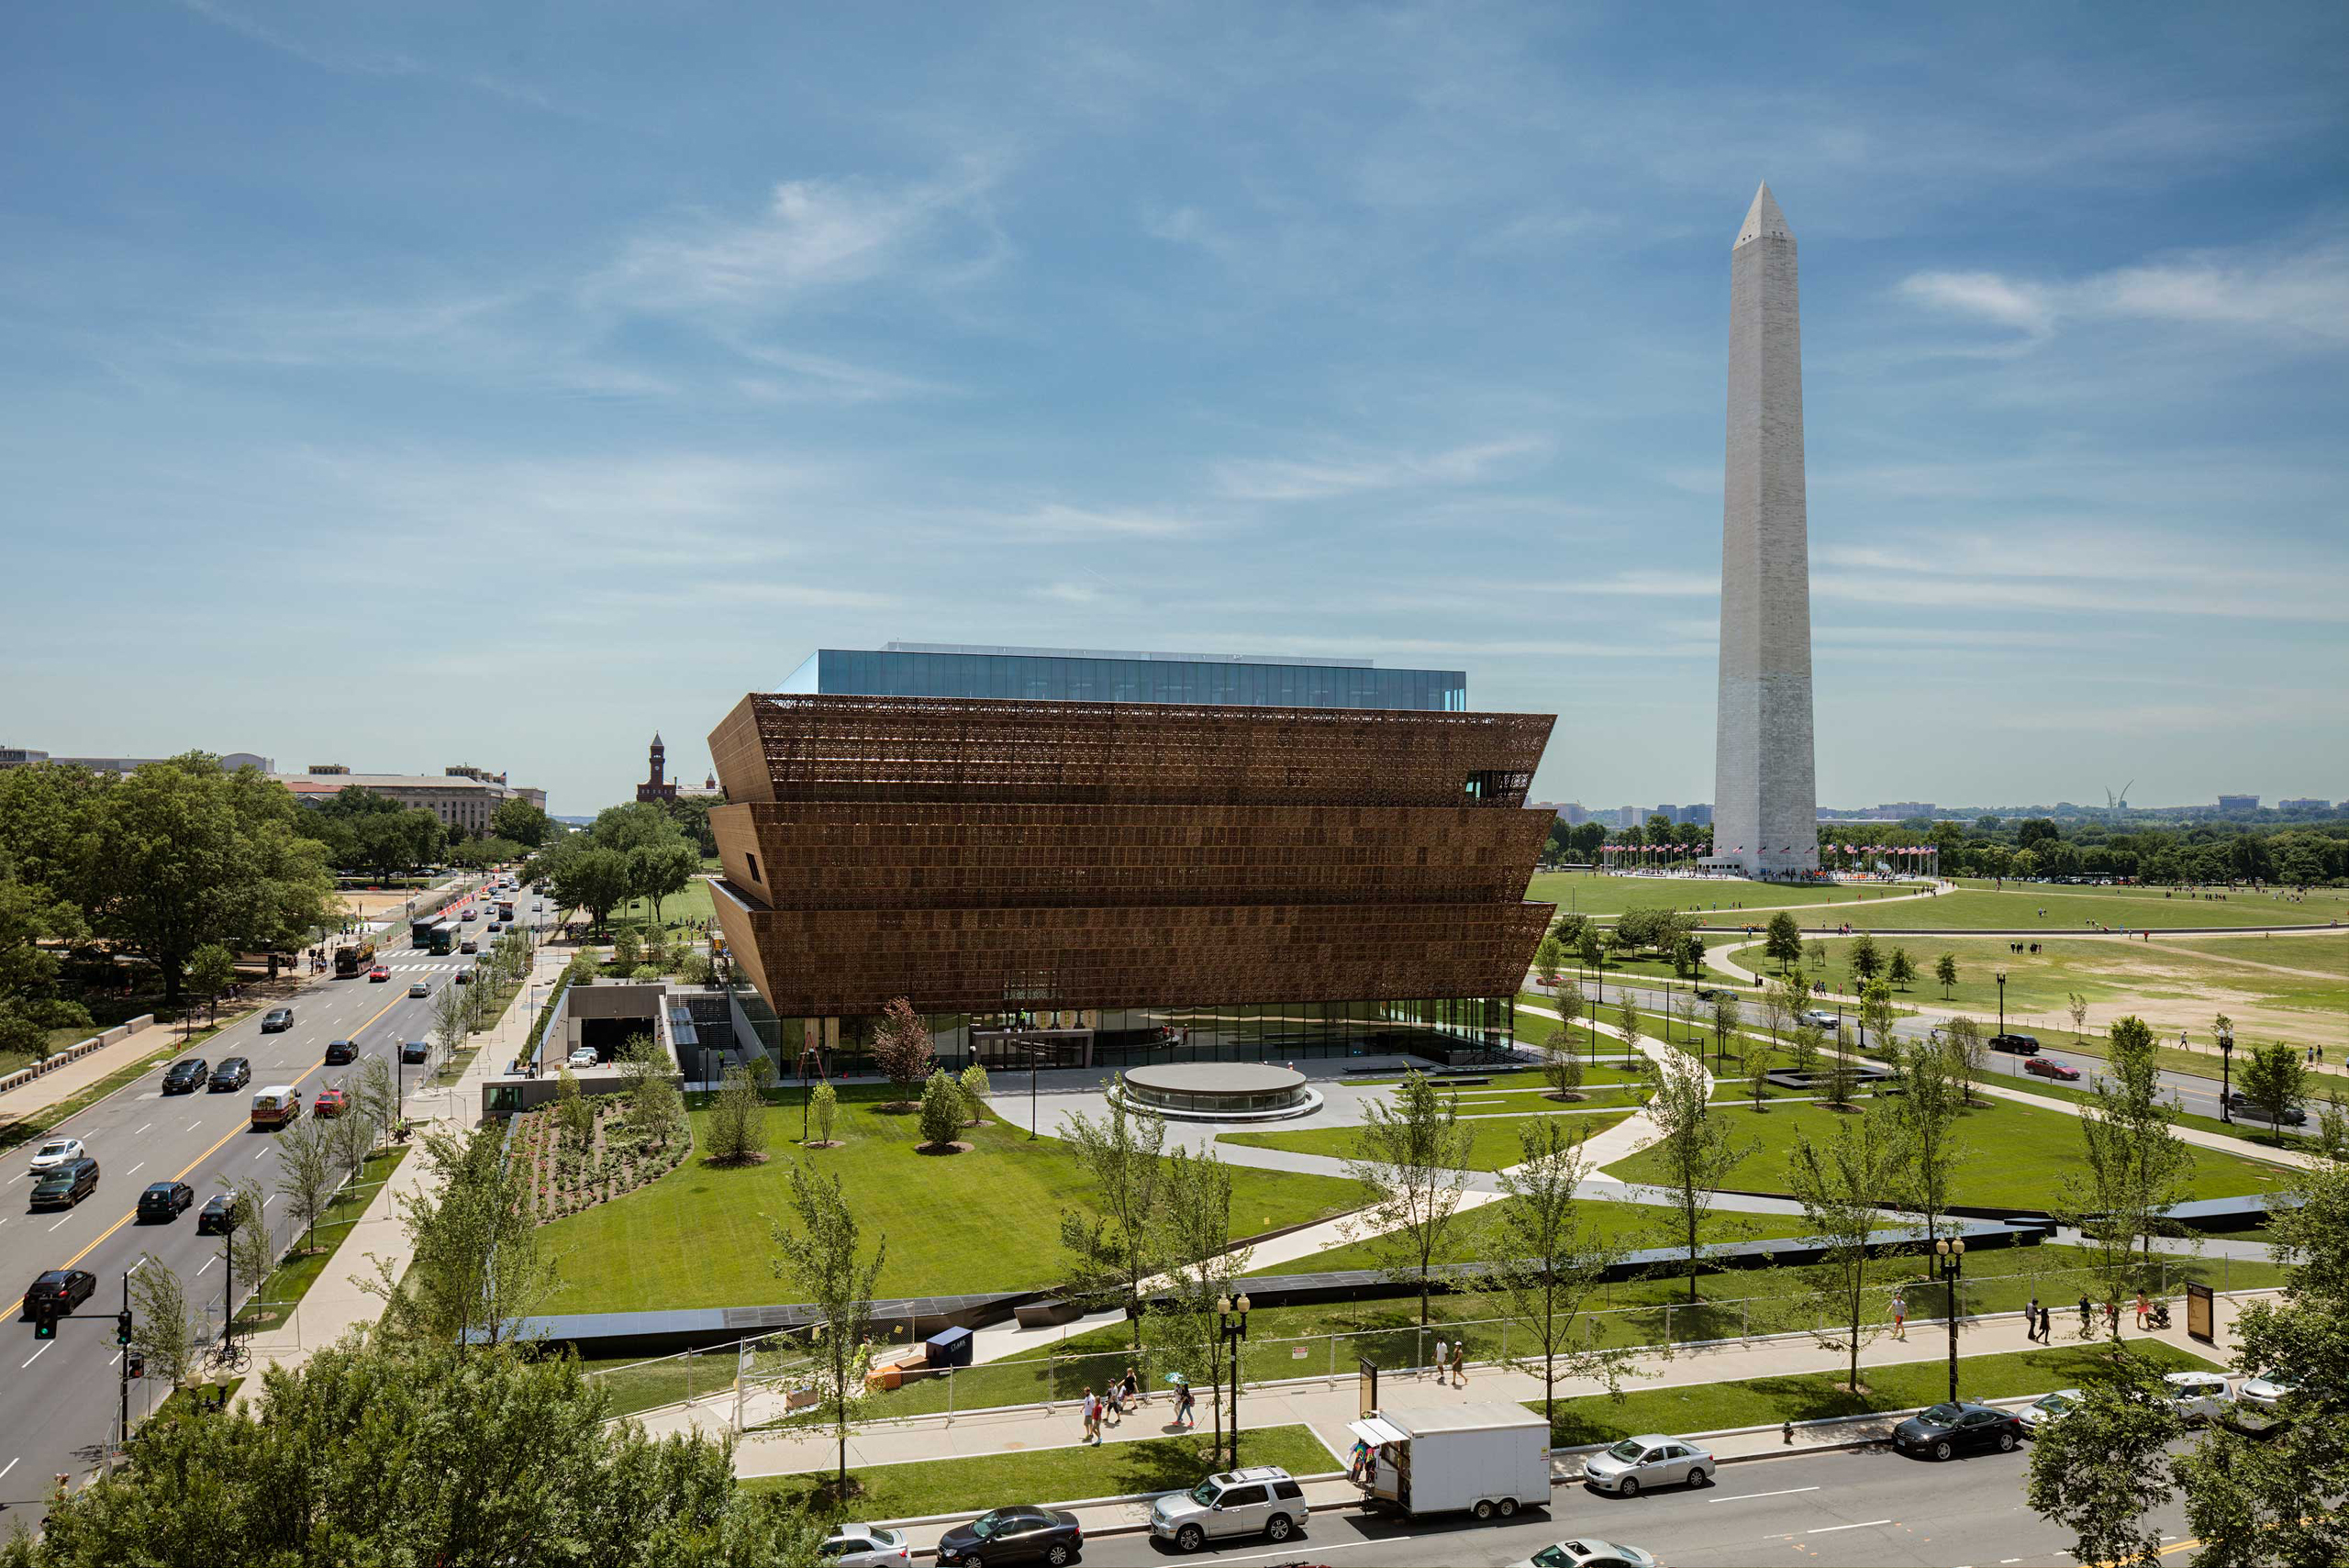 The National Museum of African American History and Culture (NMAAHC) is a Smithsonian Institution museum established in 2003. The museum's building, designed by David Adjaye, is currently under construction on the National Mall in Washington, D.C..   The museum says it will open its doors September 24, 2016. Photographed Thursday June 9, 2016.